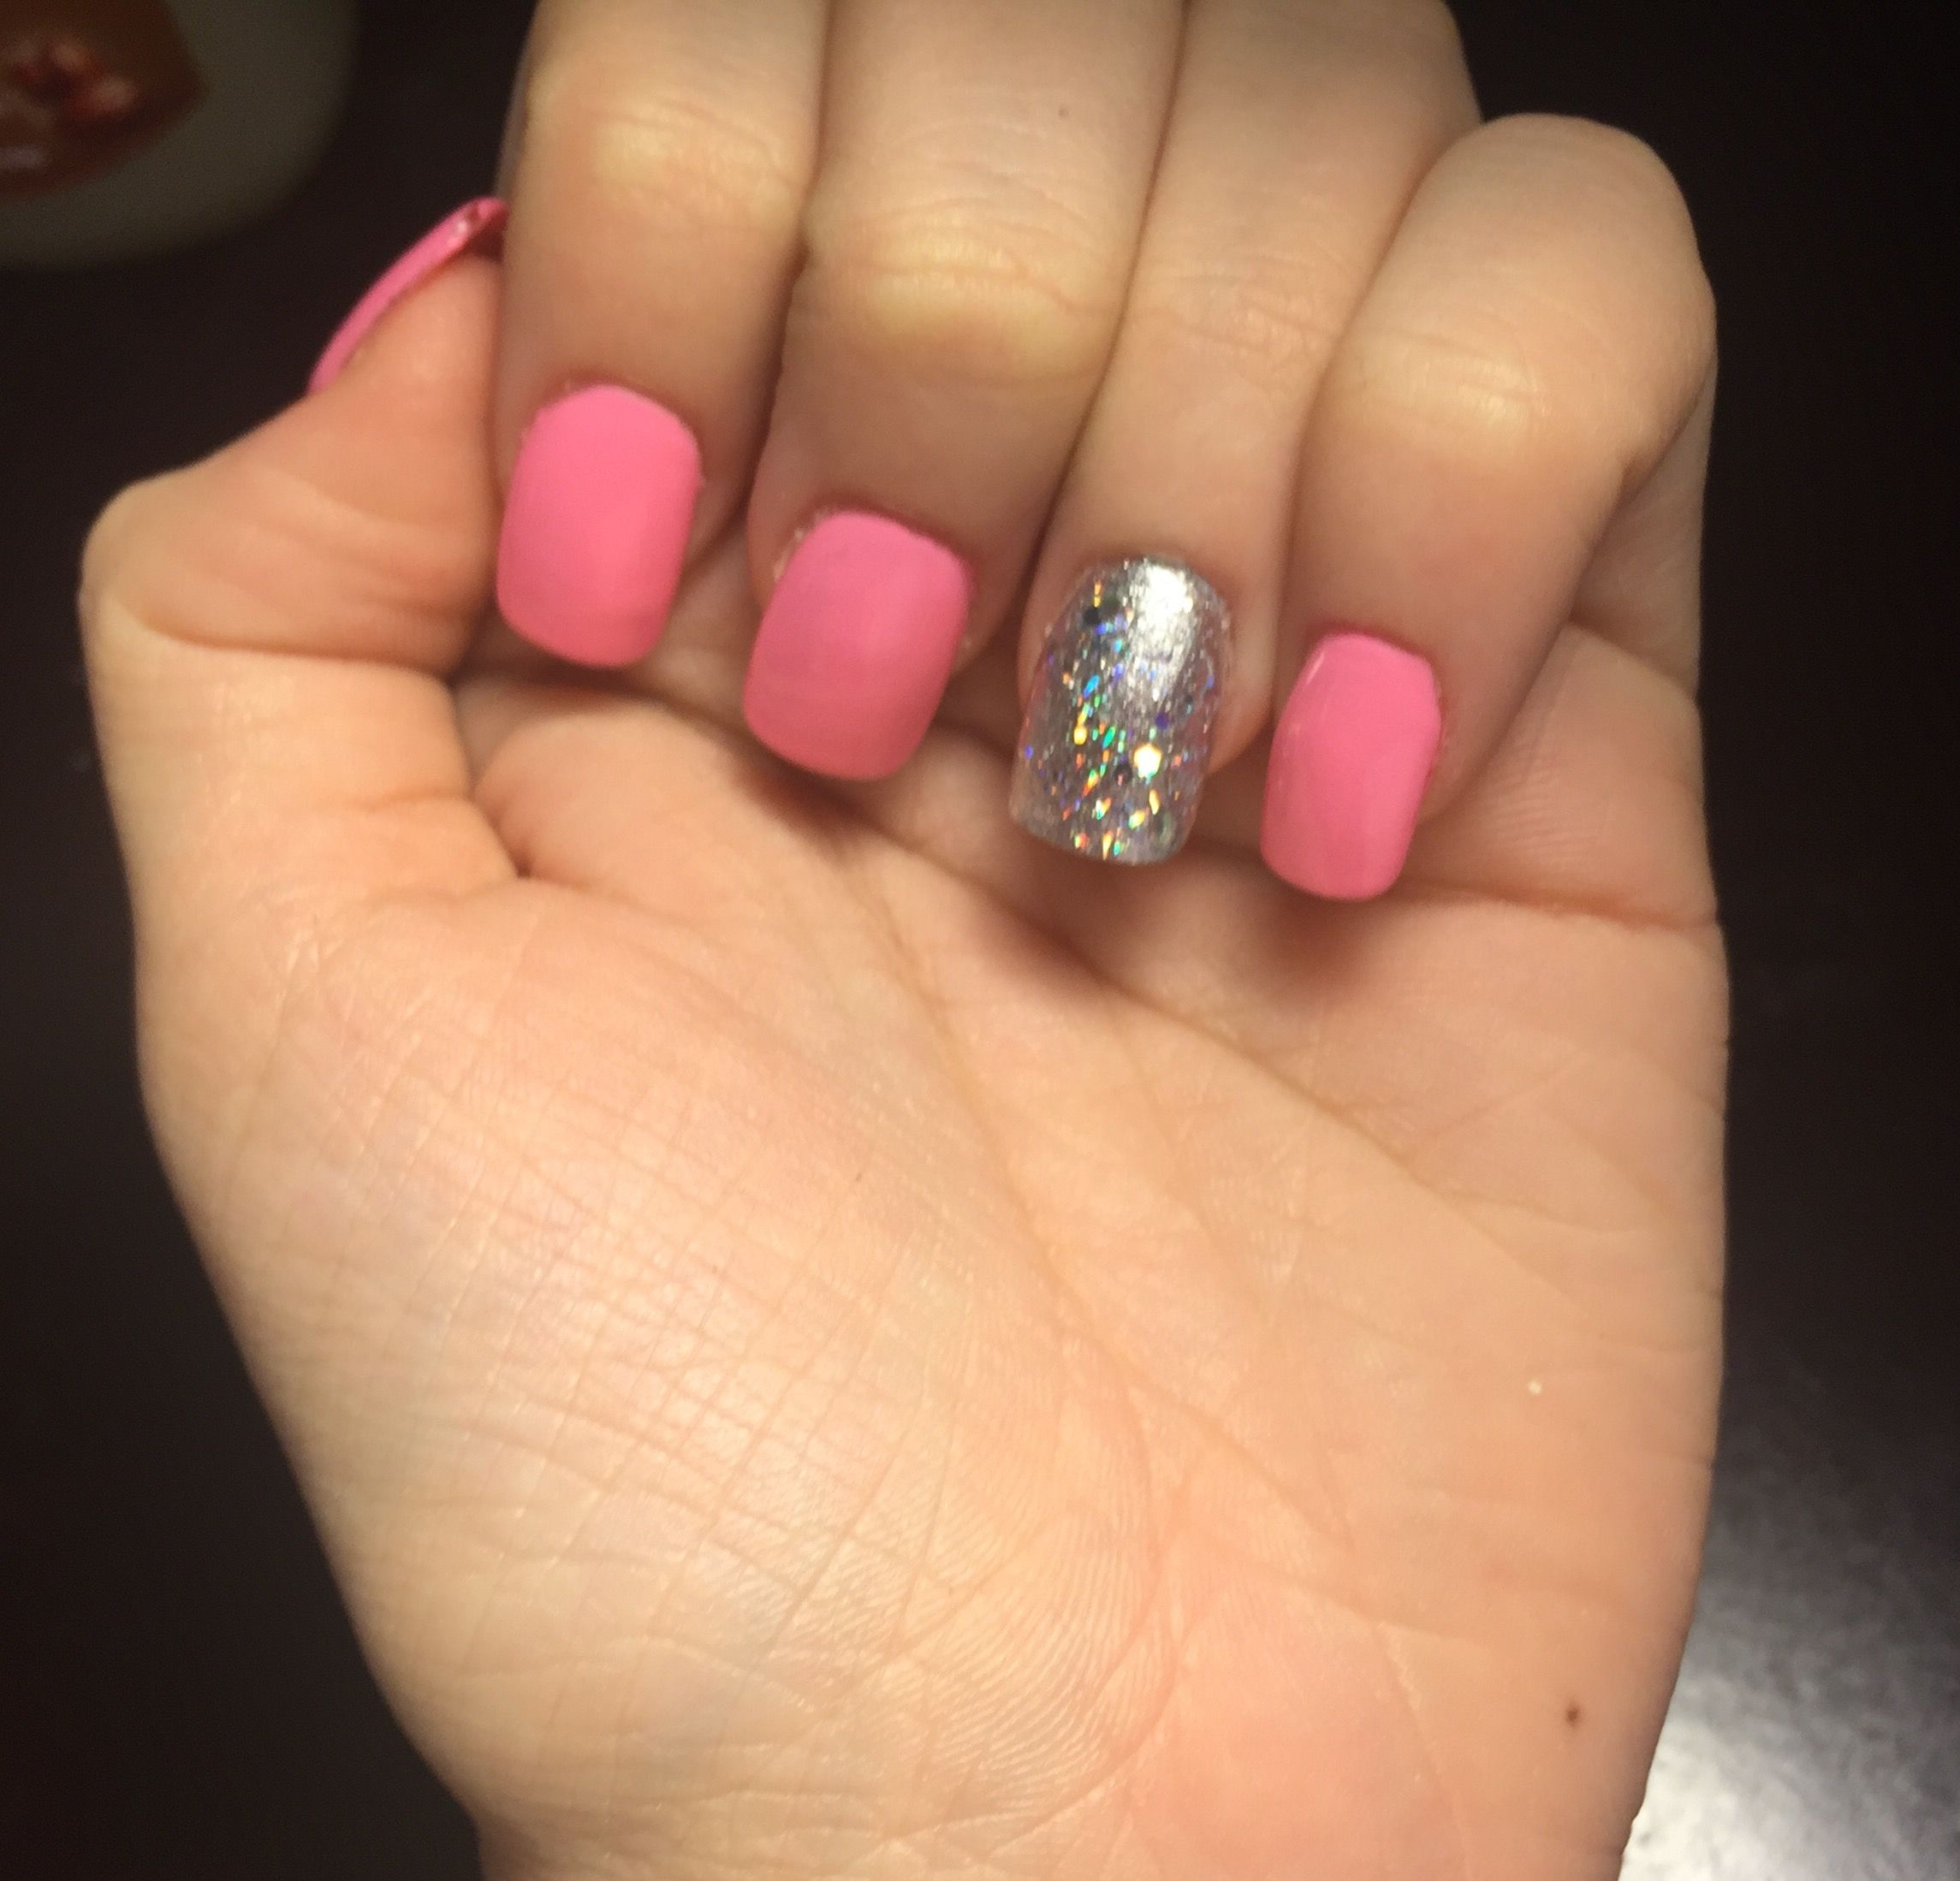 Acrylic nails fill in light pink and sliver glitter | Nails | Pinterest